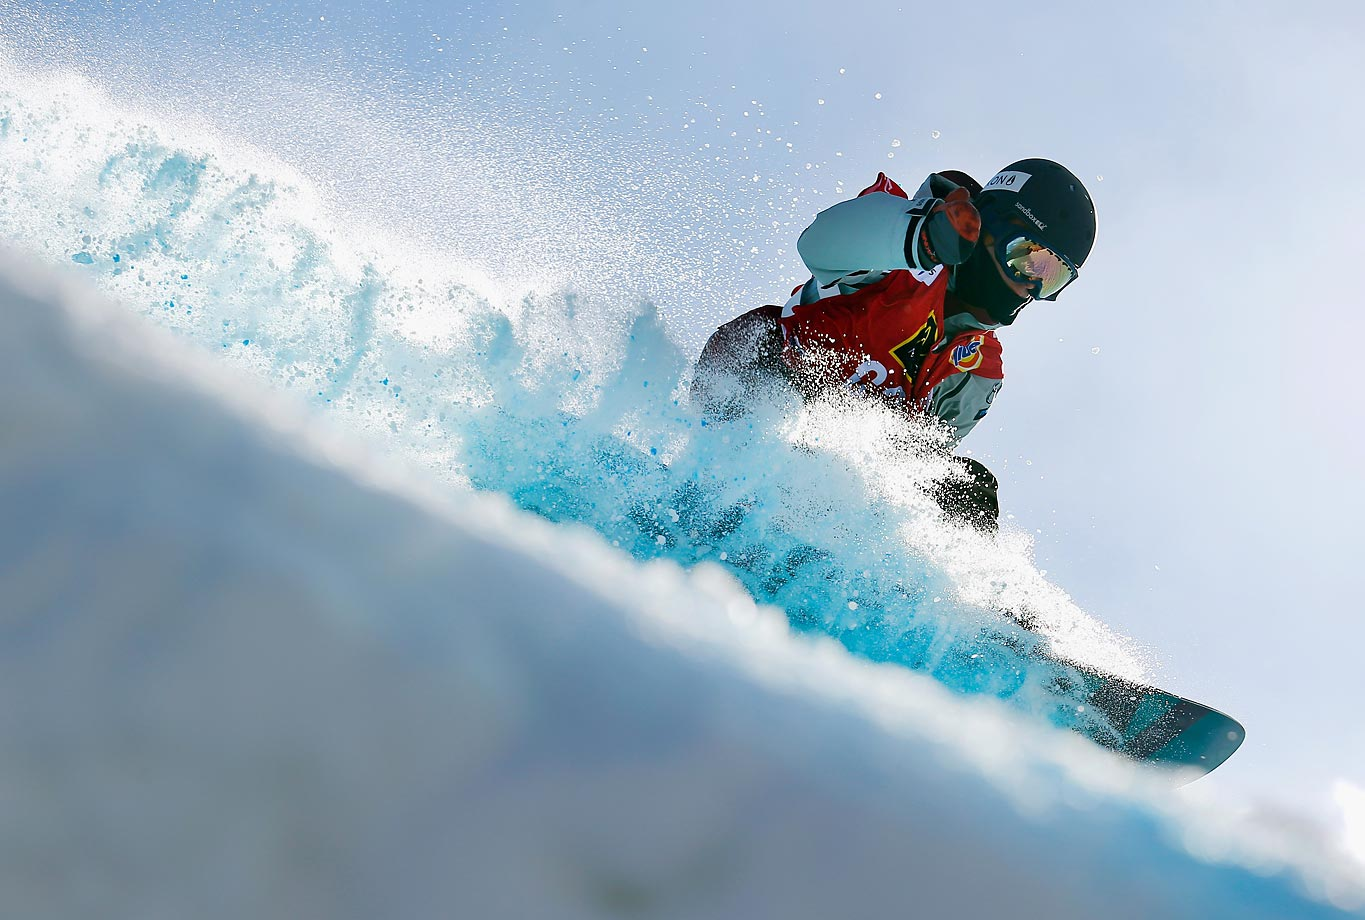 Anthony Stefanizzi of Canada competes during qualifying for the FIS Snowboard World Cup 2015 Men's Slopestyle during the U.S. Grand Prix.